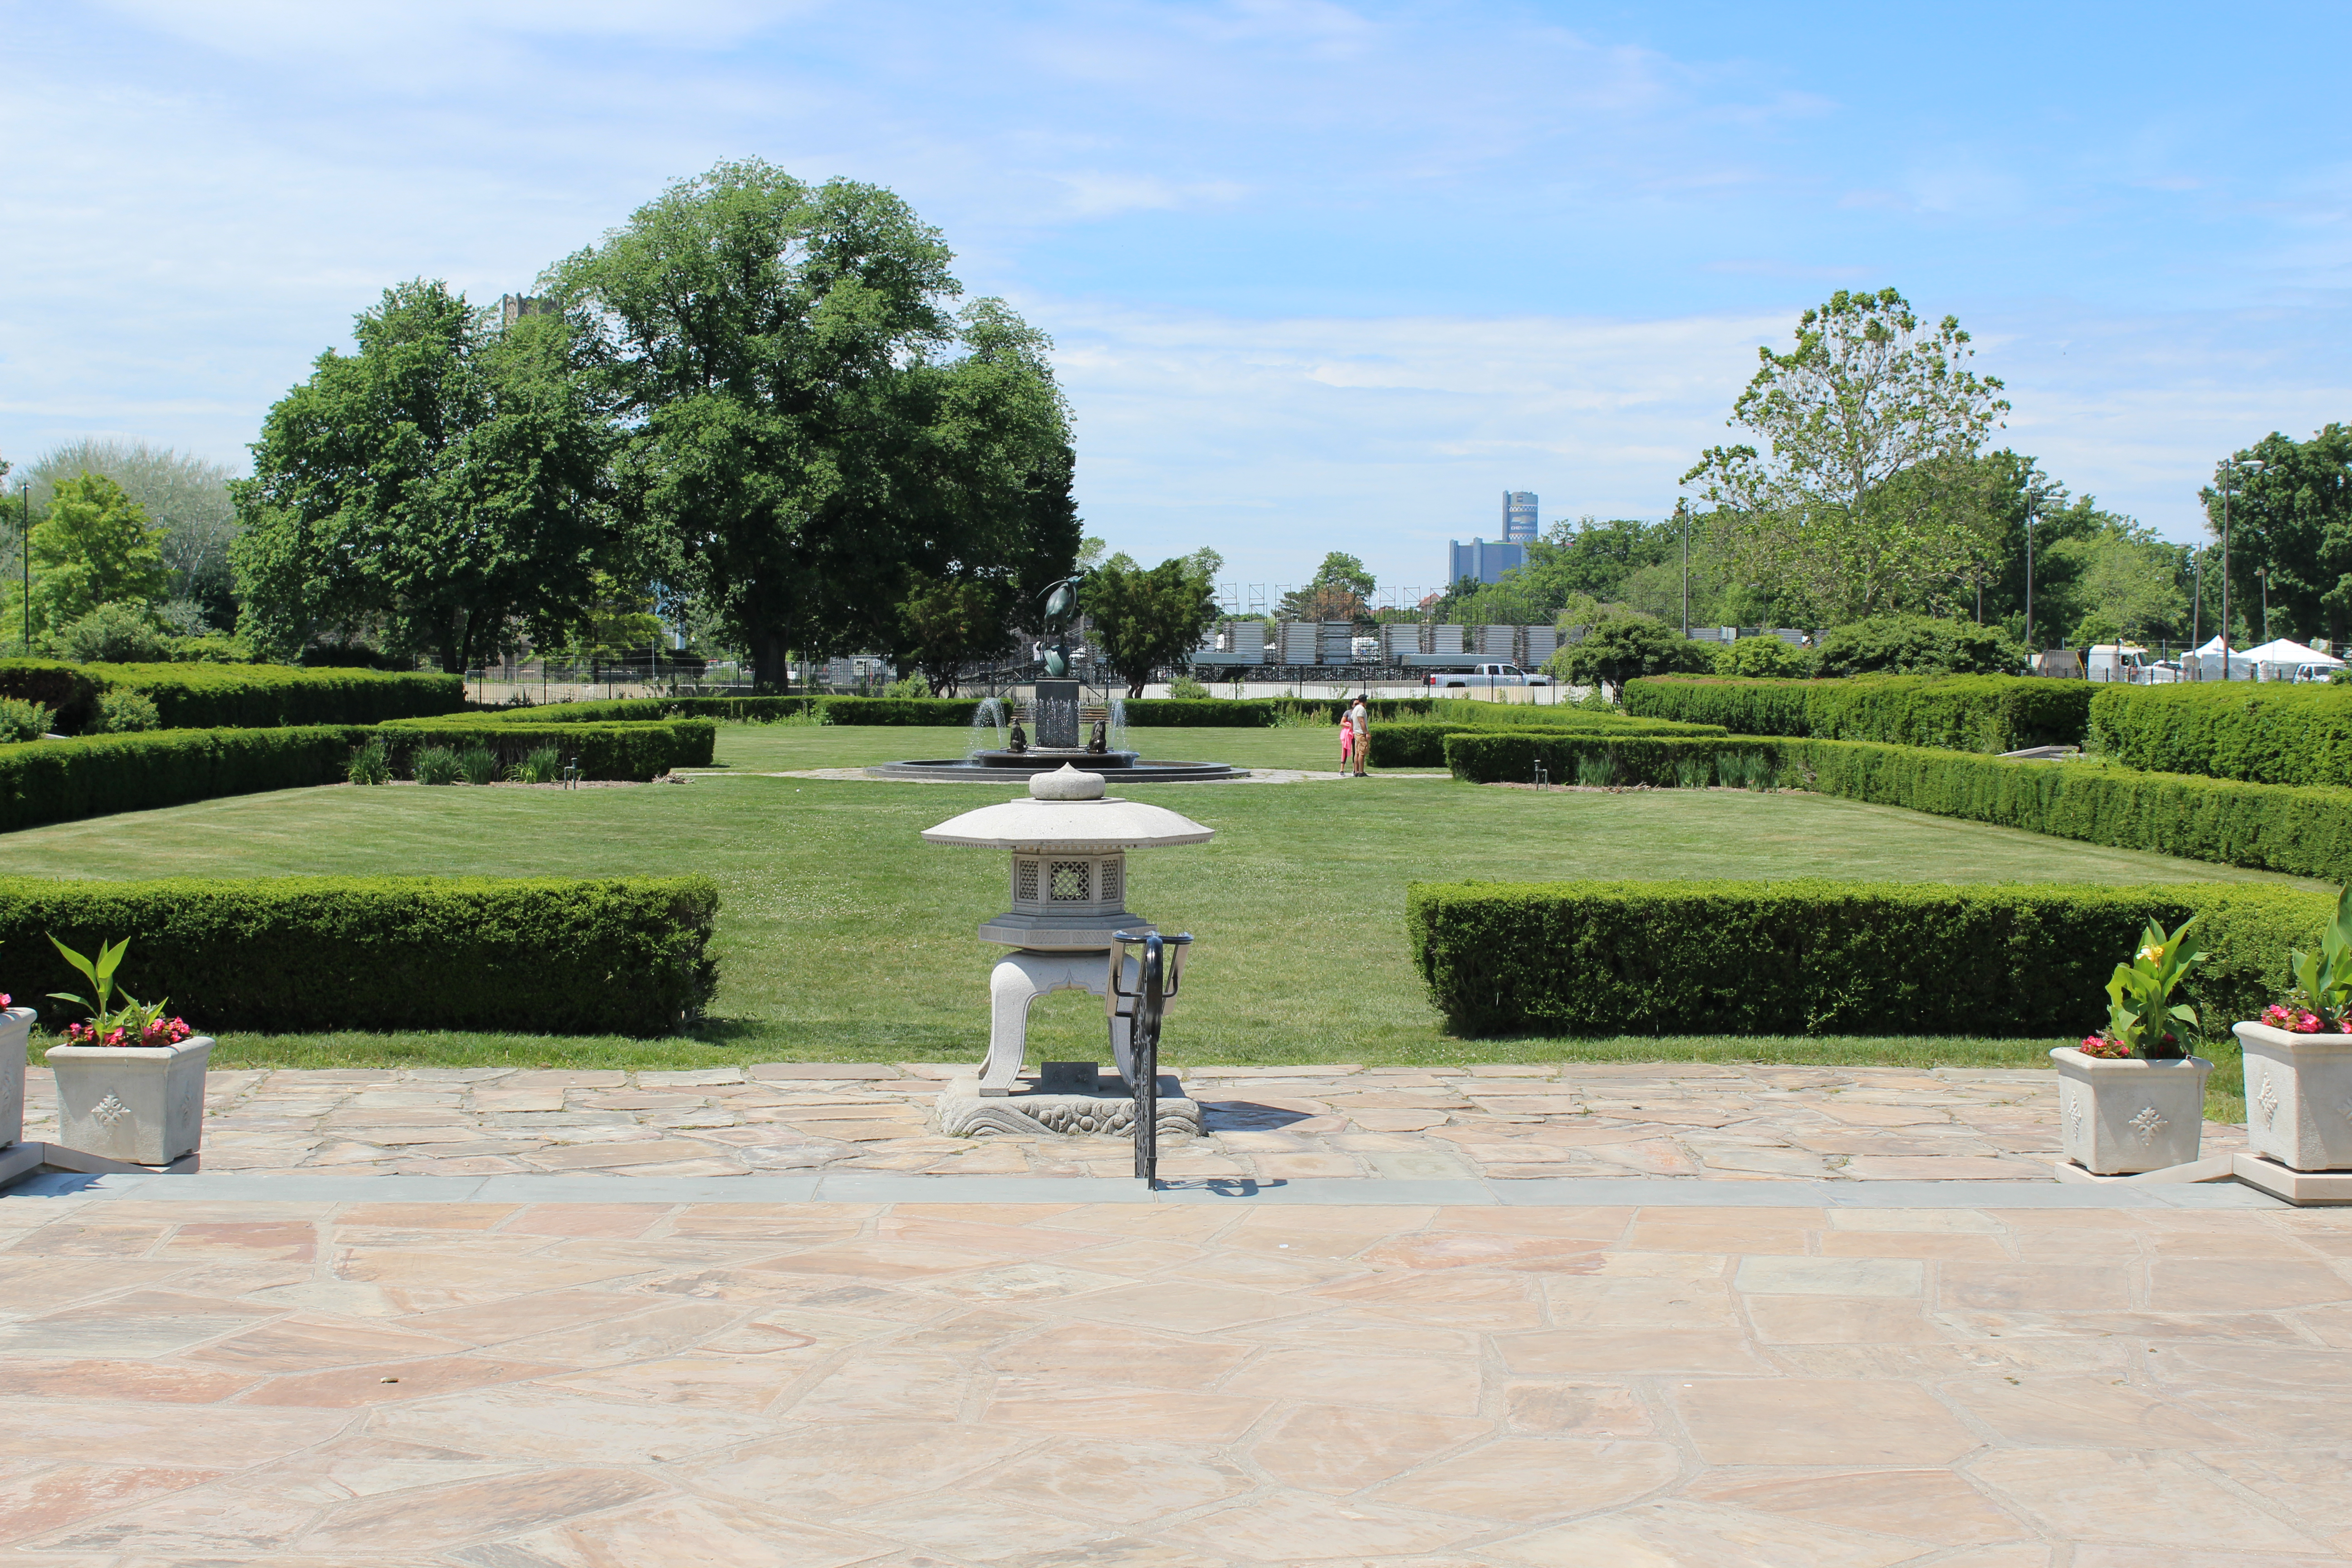 Outside garden at Belle Isle Conservatory looking toward downtown Detroit